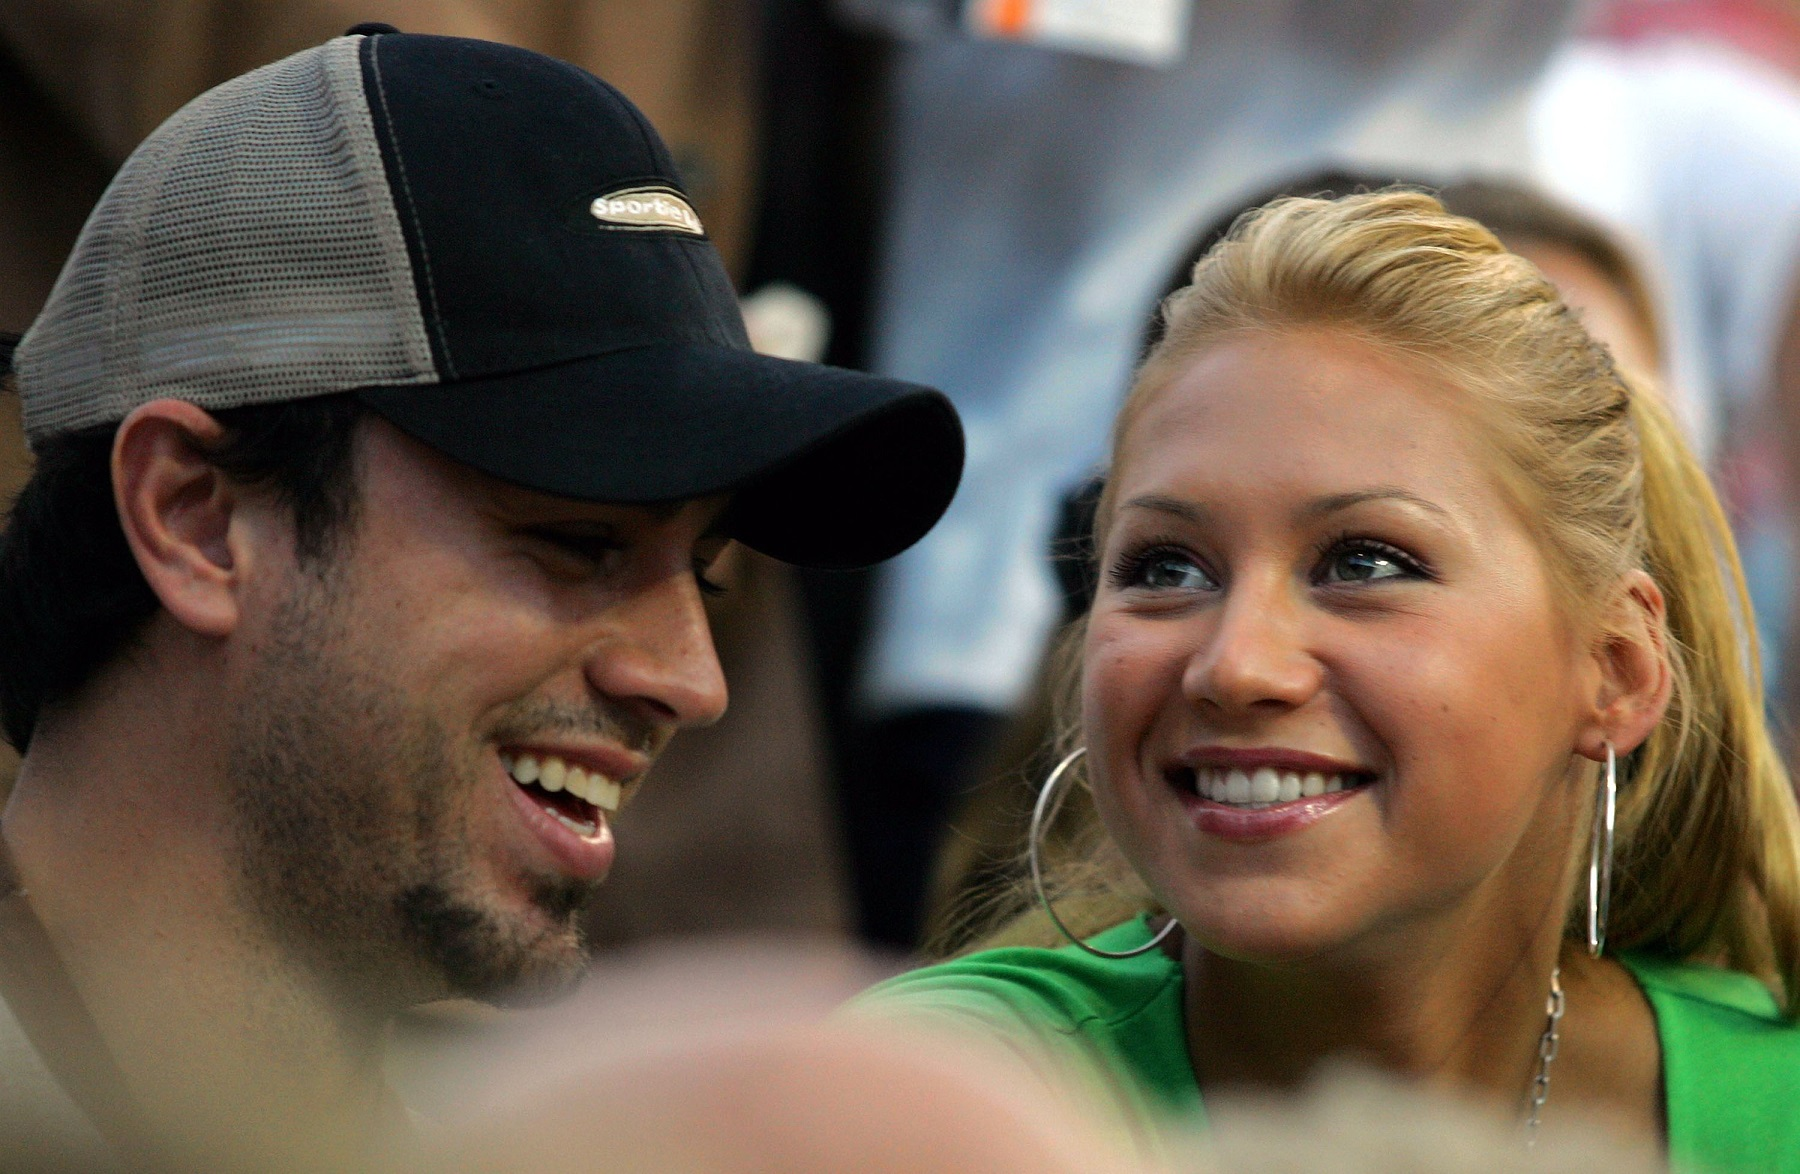 LOS ANGELES - JULY 13:  Tennis player Anna Kournikova and singer Enrique Iglesias watch Andre Agassi play against Alex Bogomolov, Jr. during day 2 of the Mercedes-Benz Cup  on July 13, 2004 at the Los Angeles Tennis Center at UCLA in Los Angeles, California.  (Photo by Ronald Martinez/Getty Images)